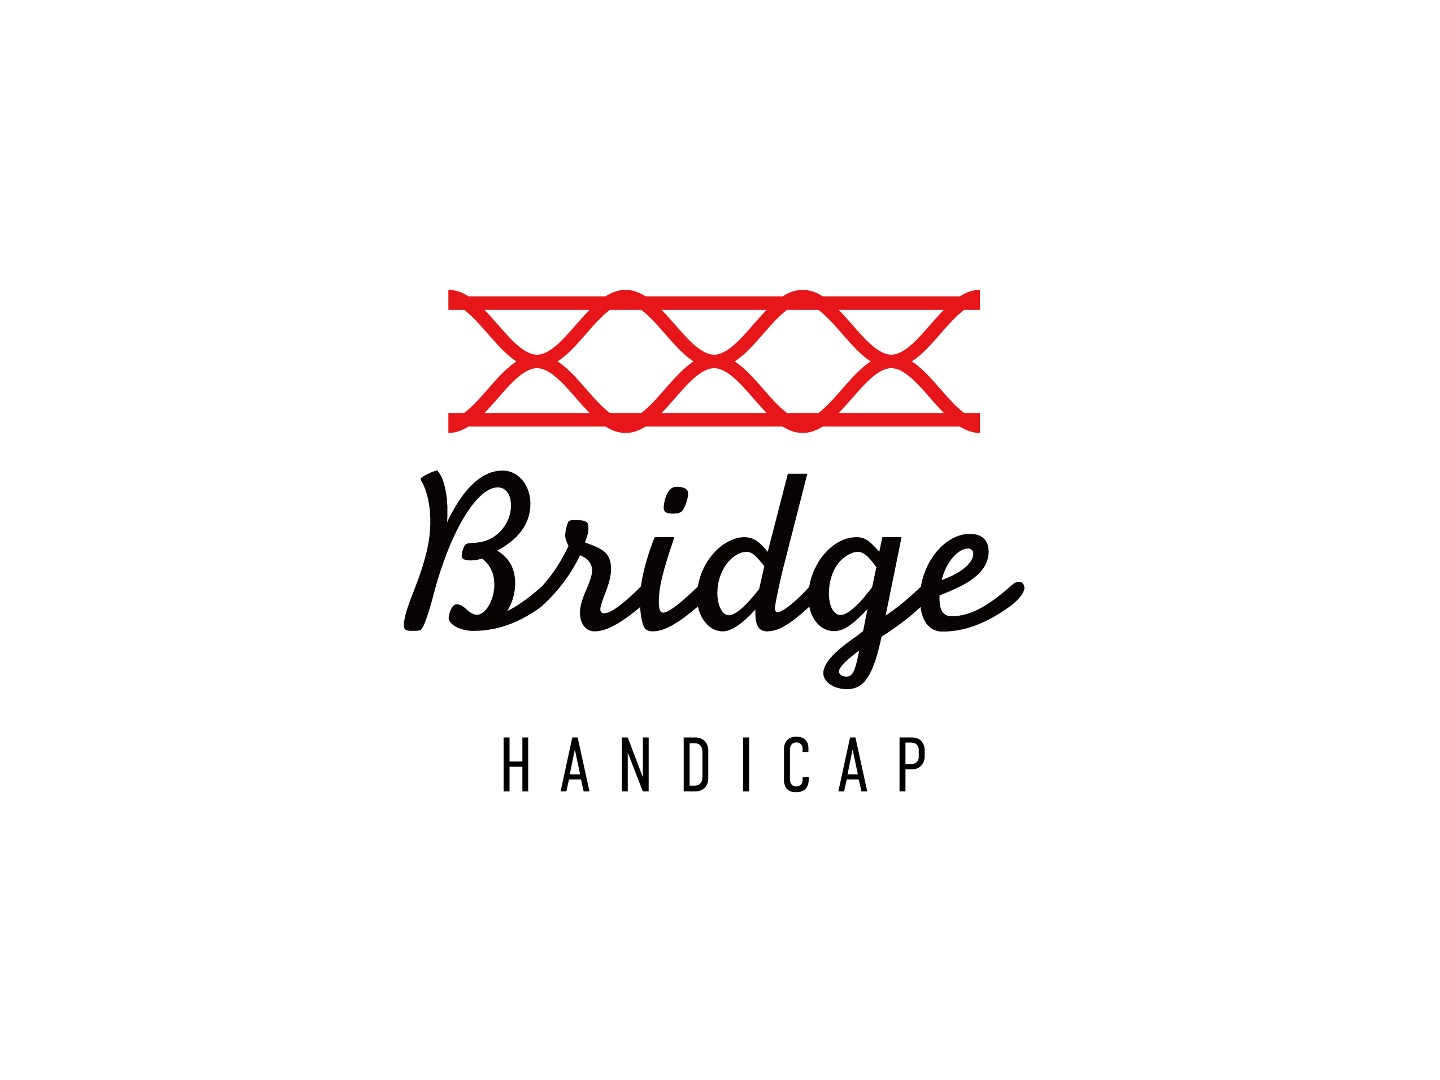 BRIDGE HANDICAP